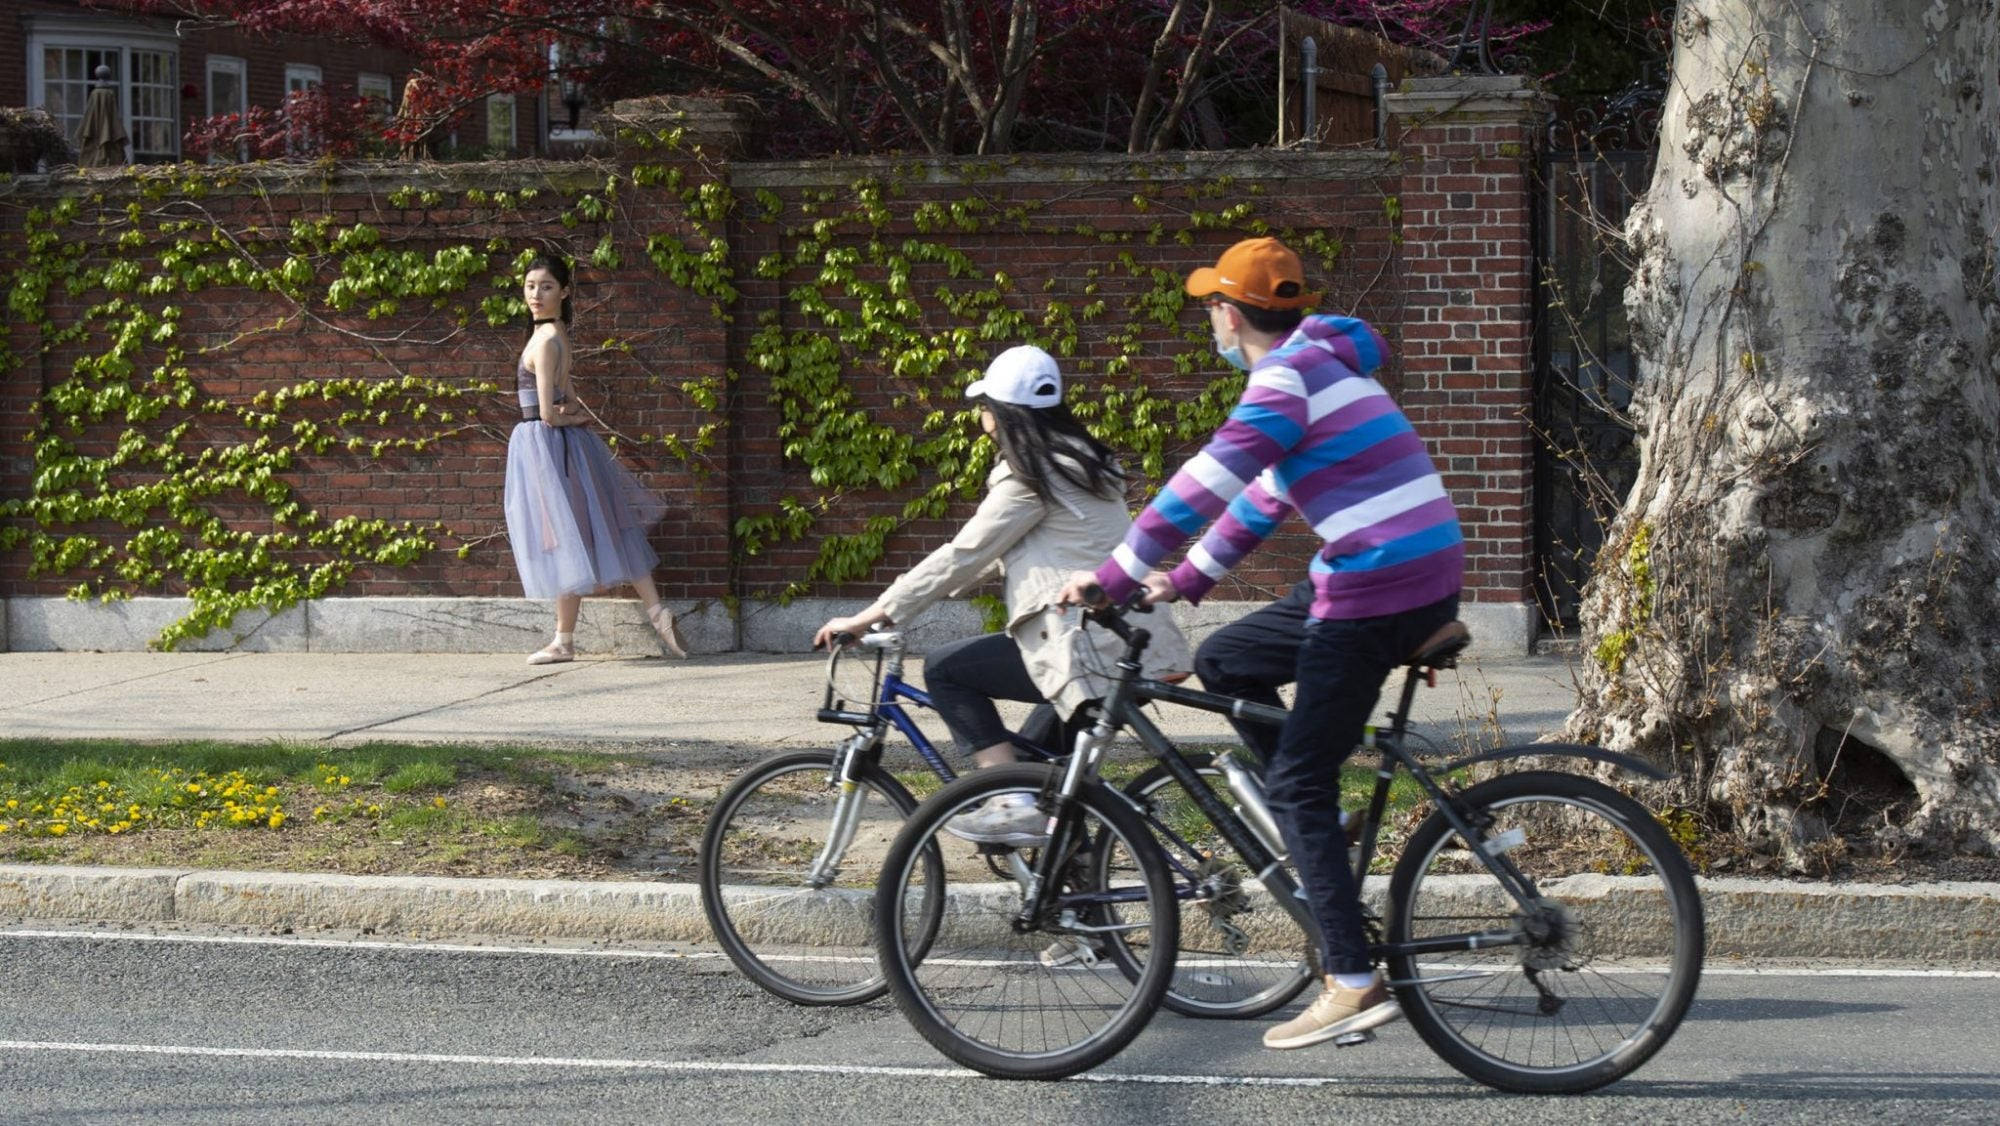 Two people biking while a woman does ballet